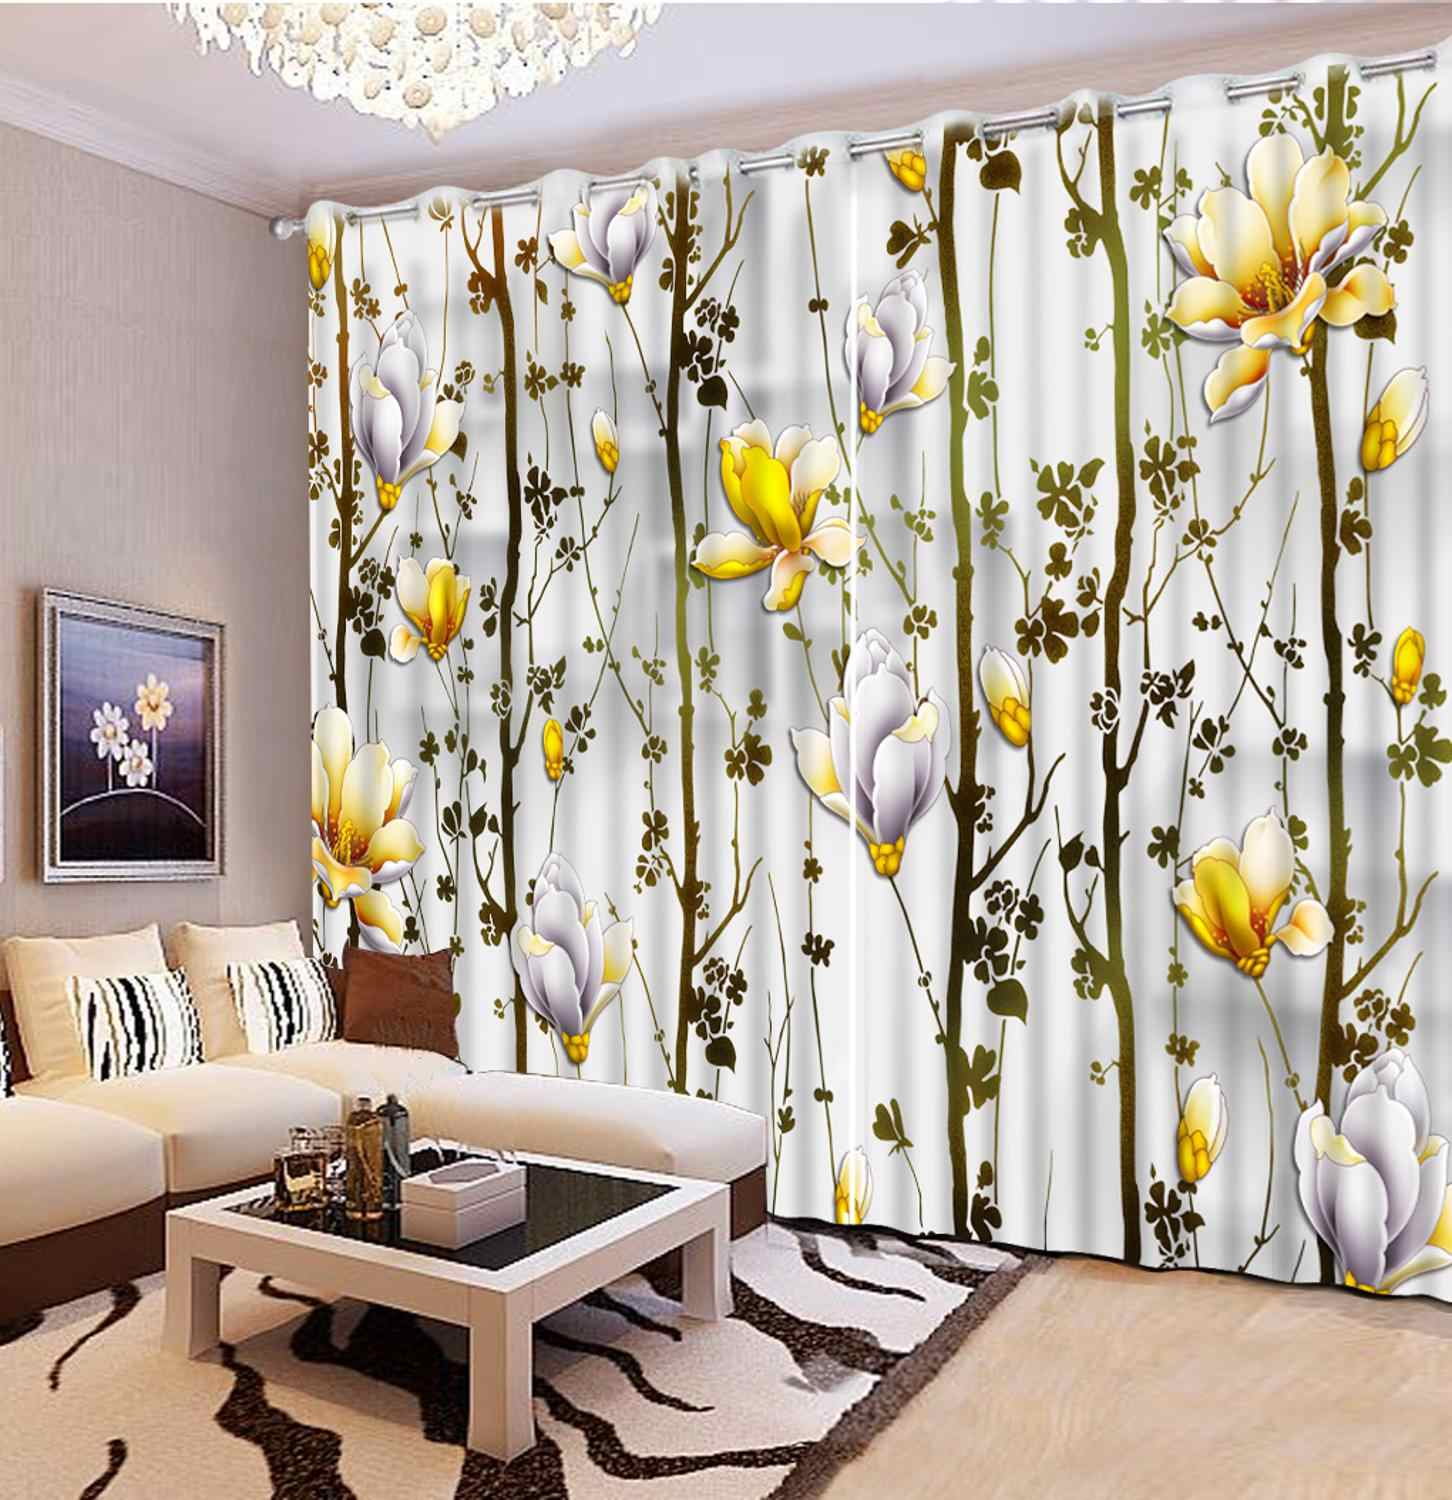 Abstract tree flower living room girls curtains for bedroom Home Decoration 3D curtains